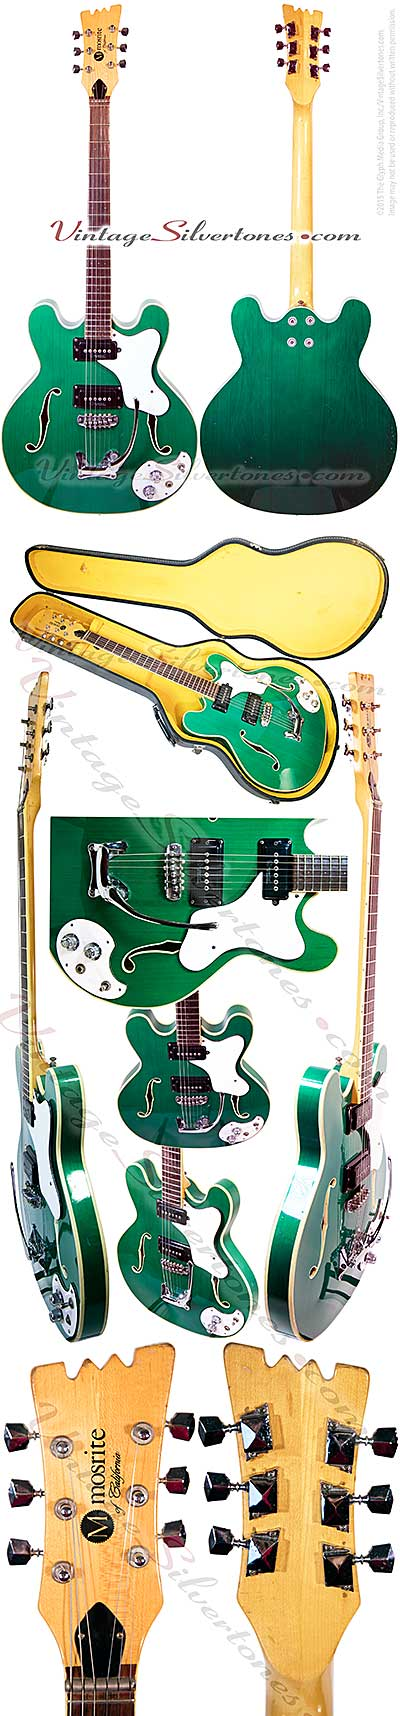 Mosrite CE, green, 2pu, double cutaway, hollow body, Mosrite tailpiece, 1966, California